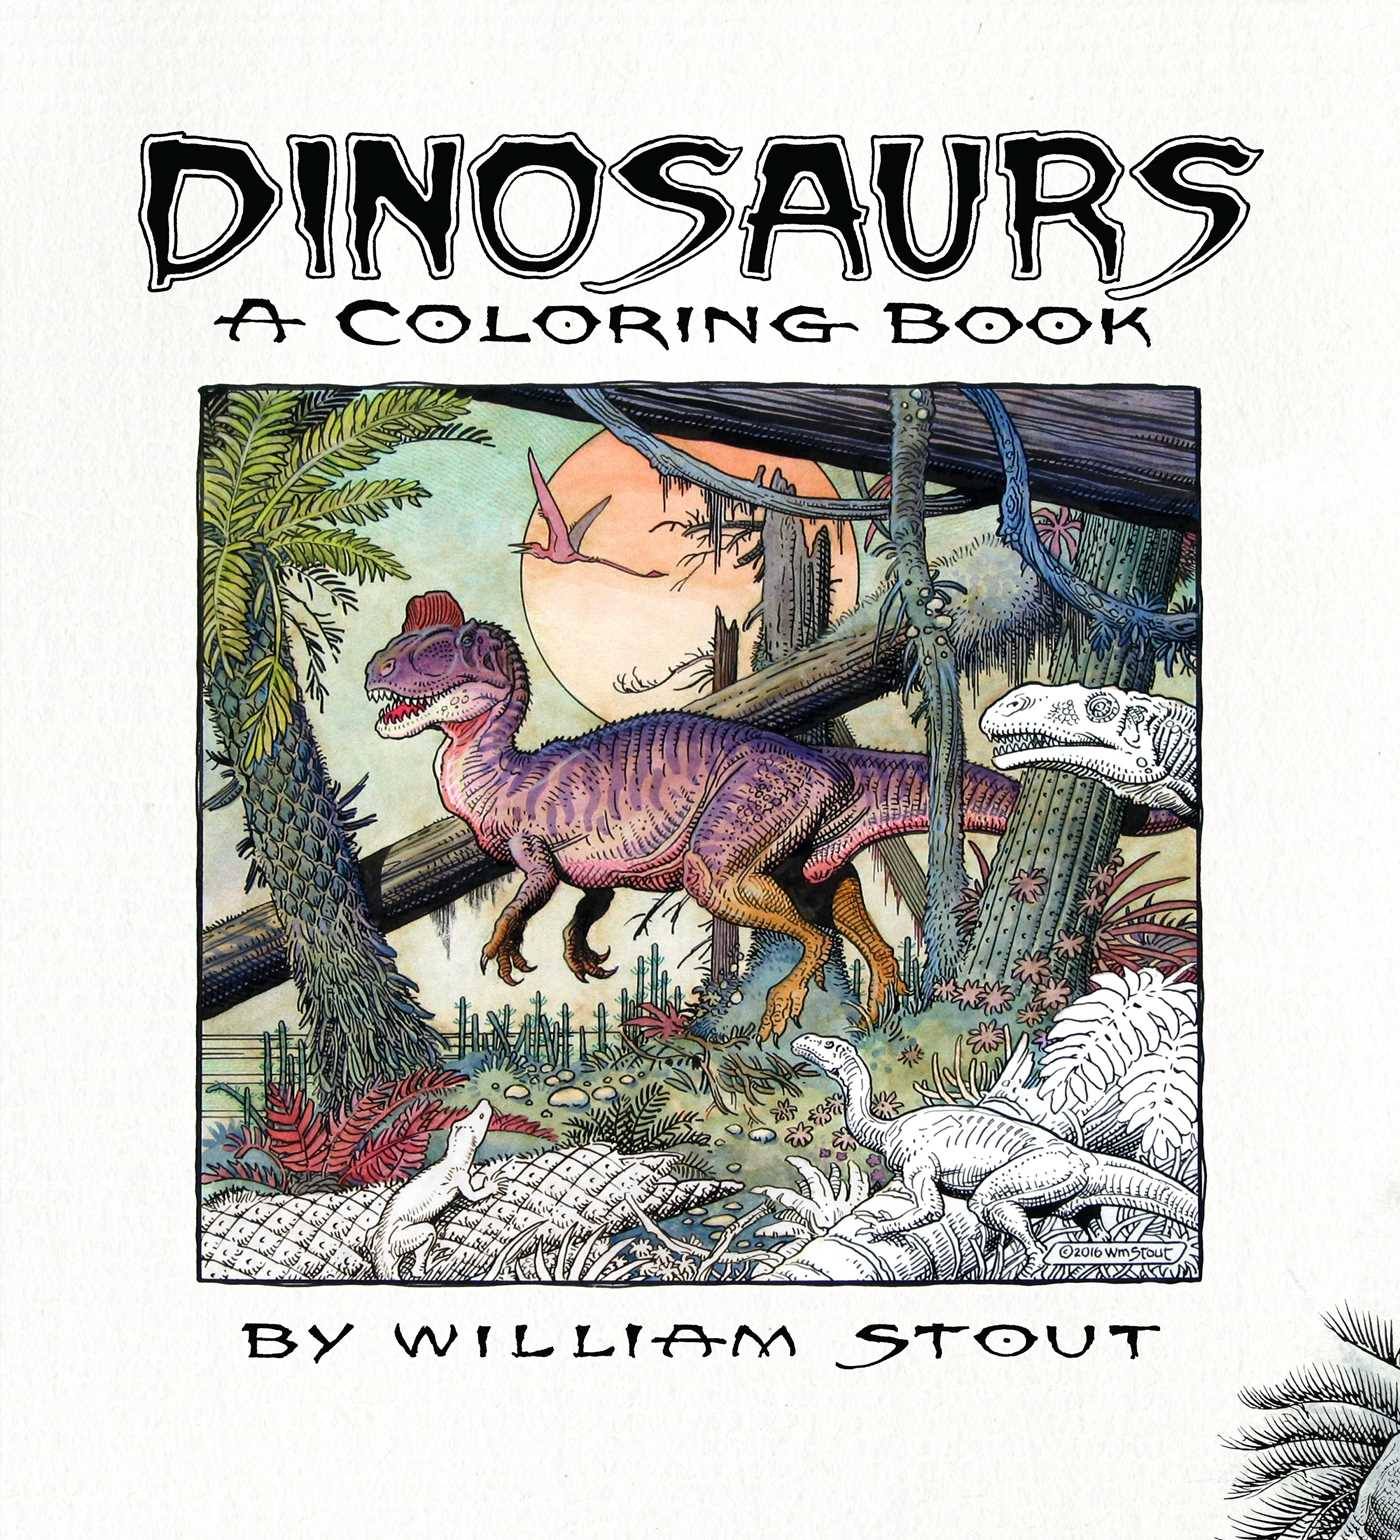 Dinosaurs A Coloring Book By William Stout 9781608878642 Hr